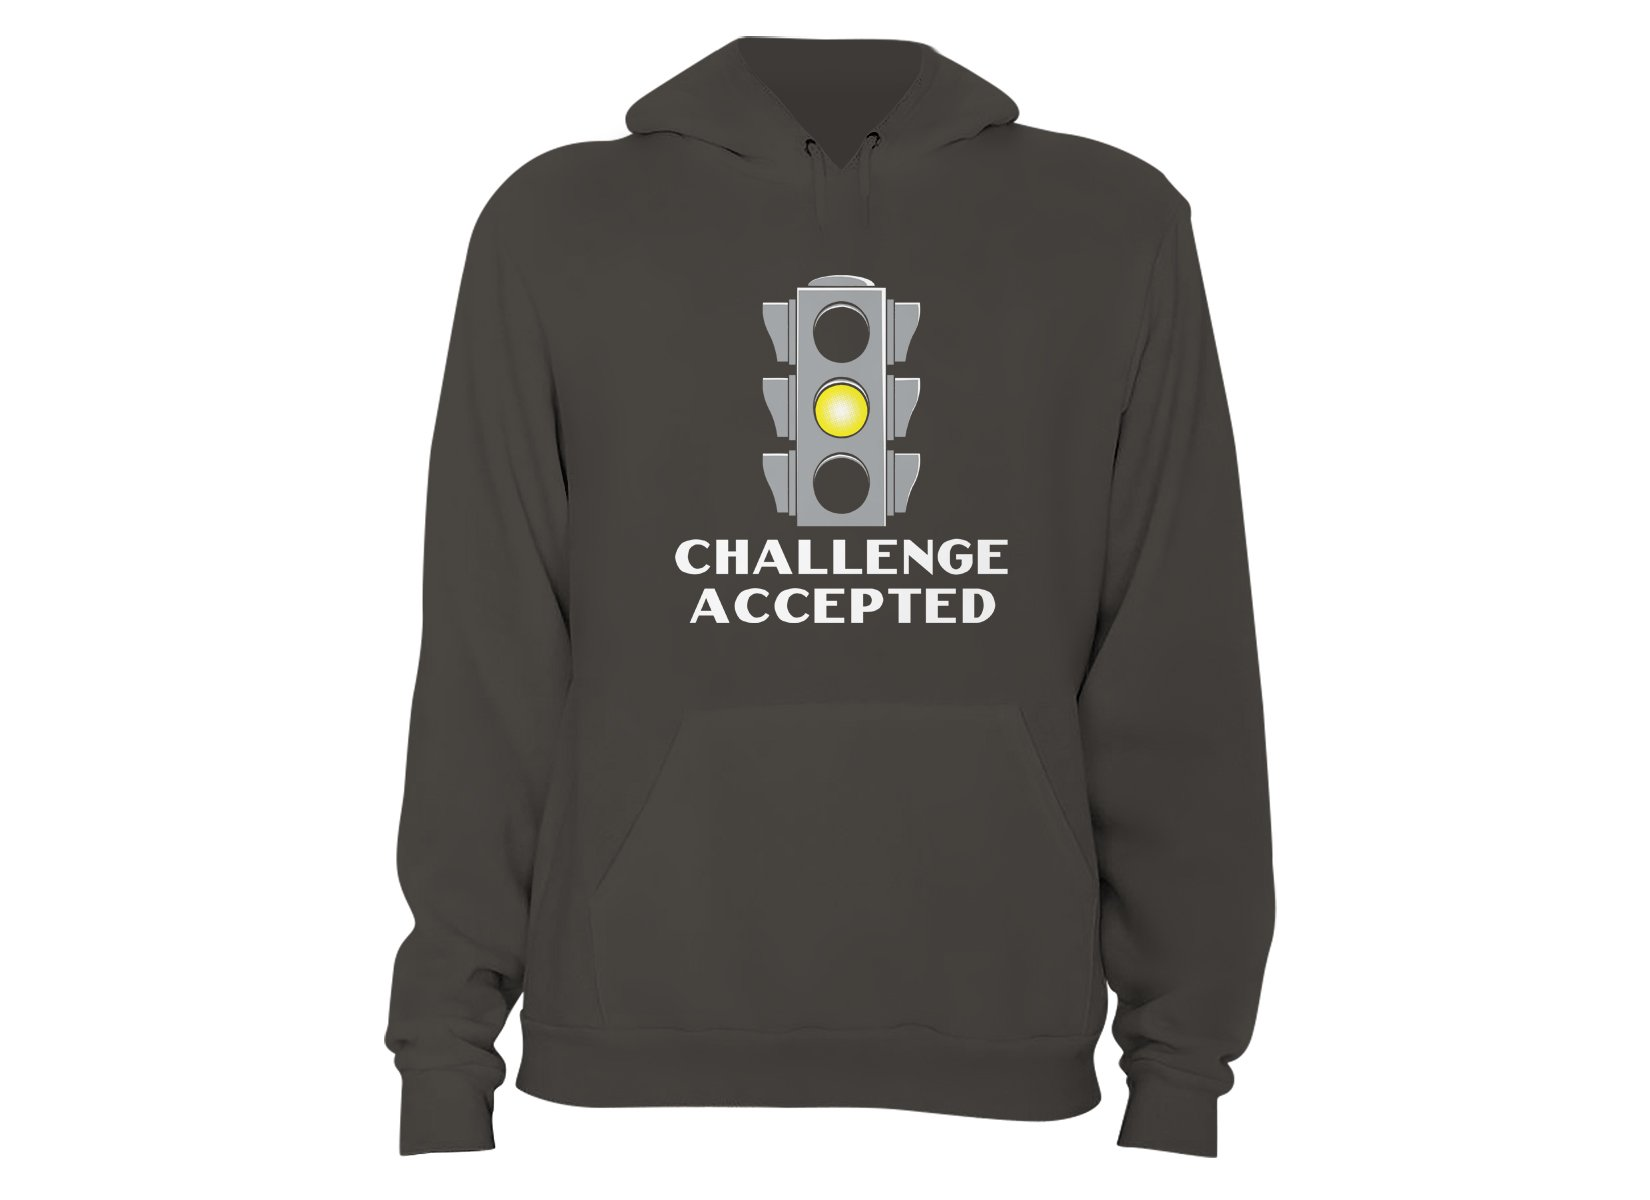 Challenge Accepted Stoplight on Hoodie